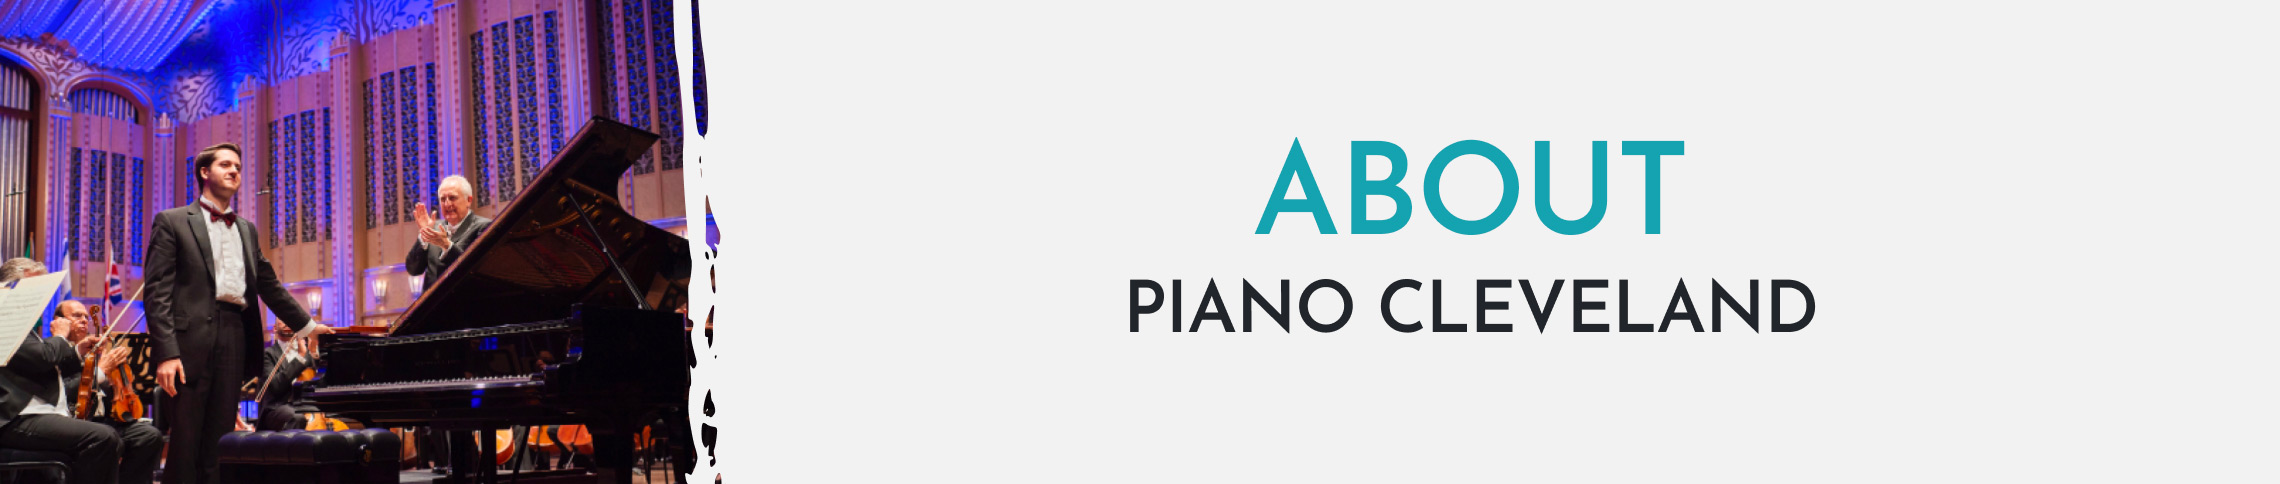 About Piano Cleveland